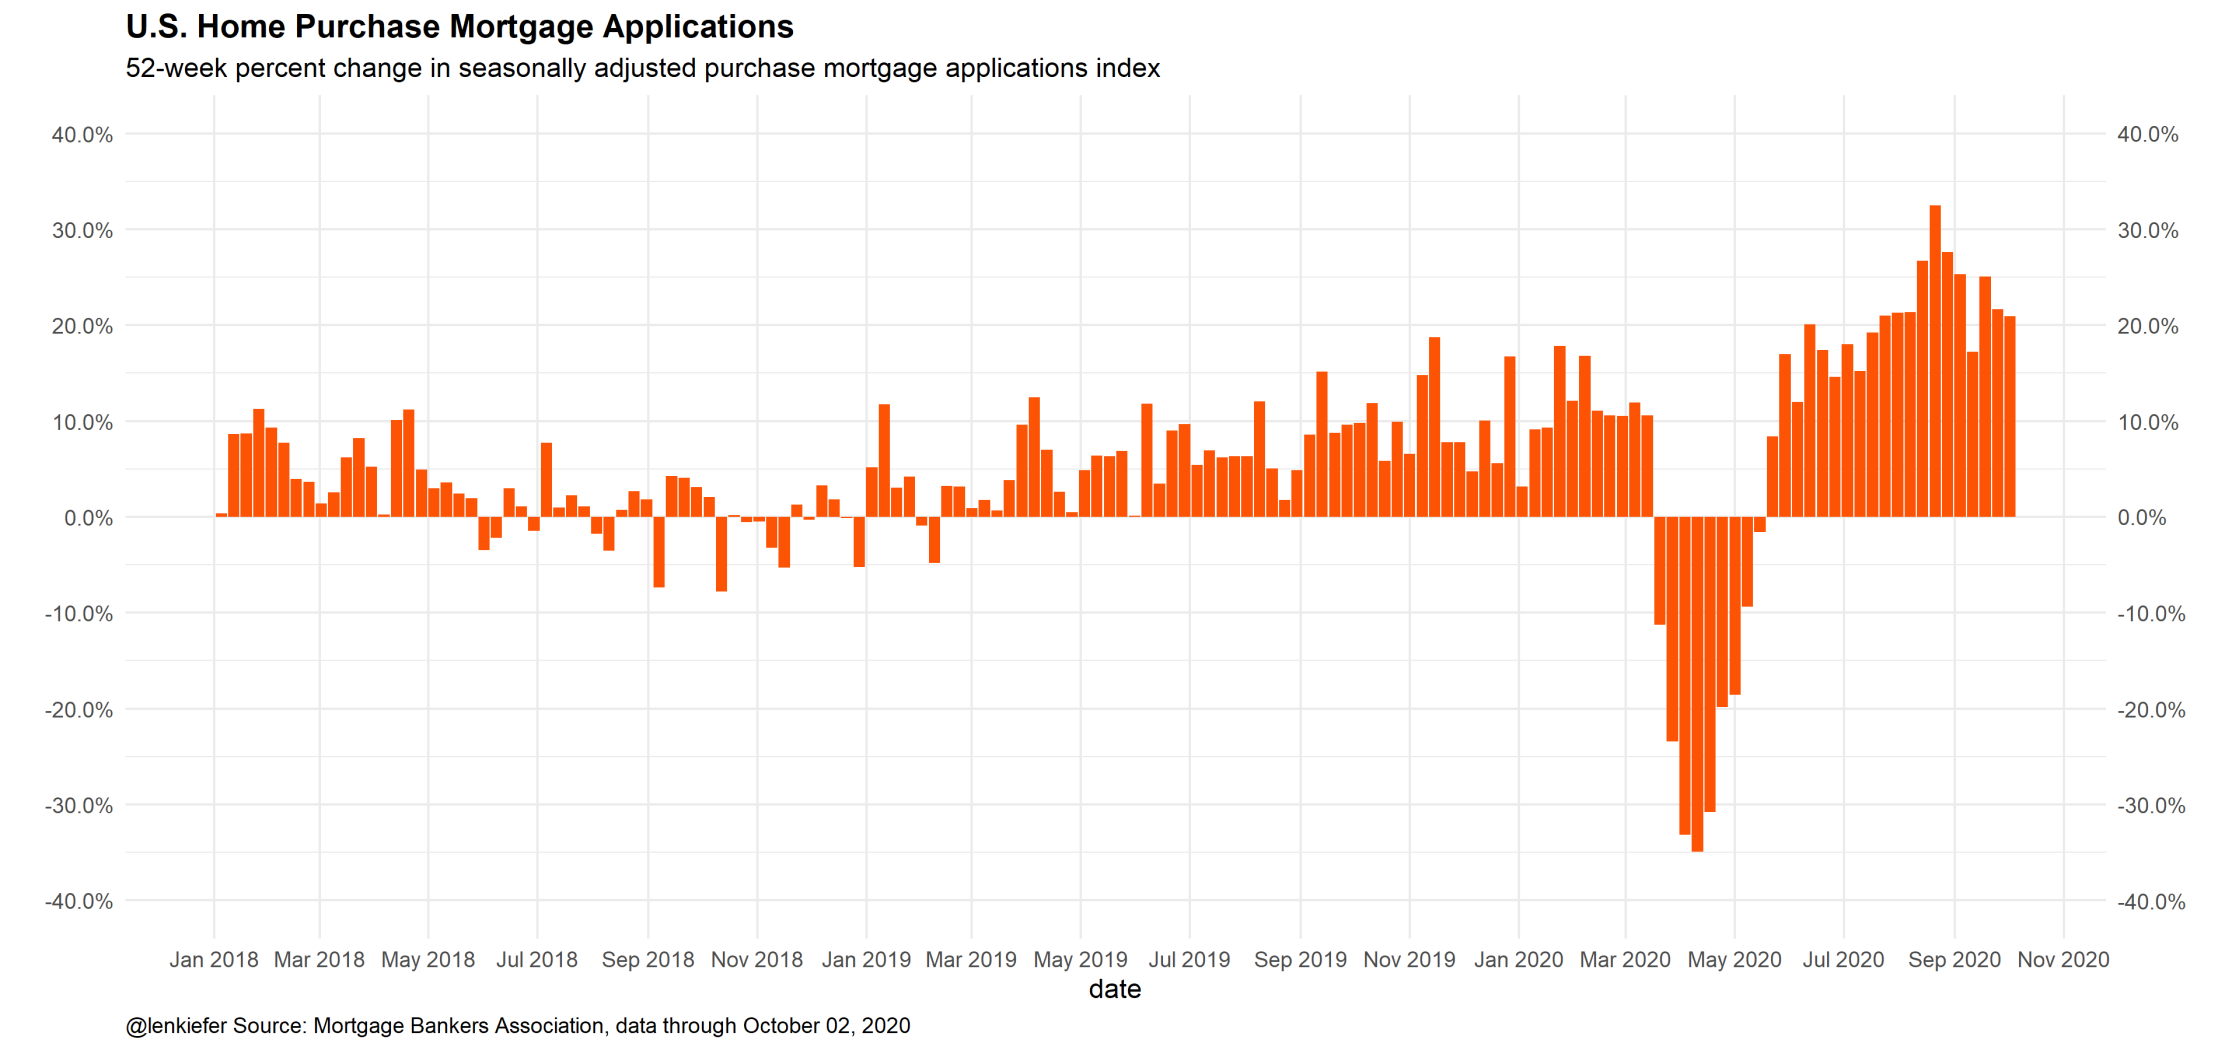 Bar chart showing 52-week percent change in US home purchase mortgage applications